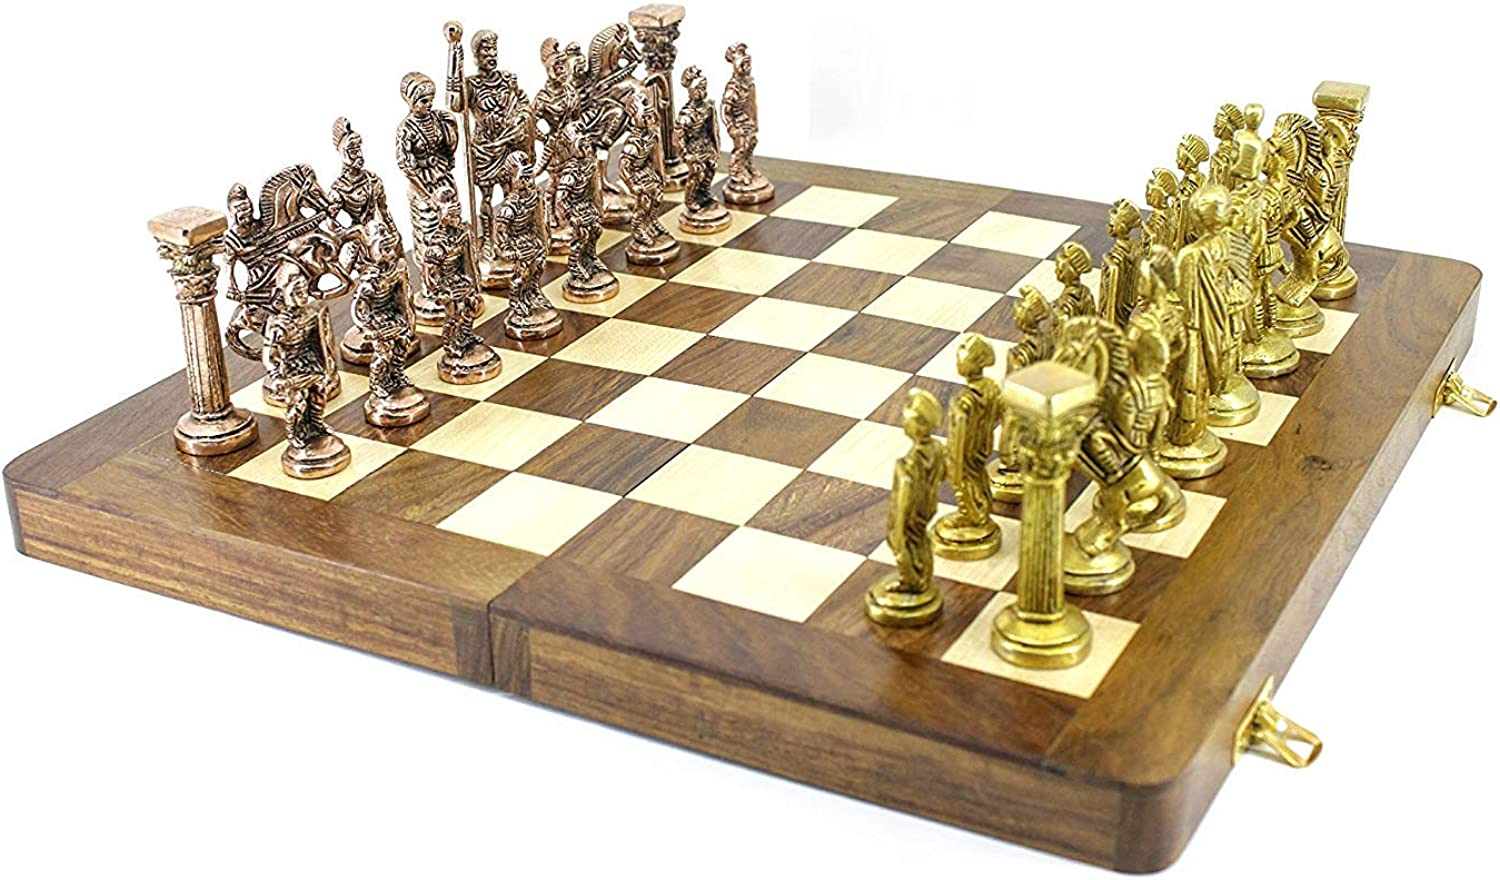 Fasherati Folding Chess Board Größe 16  x 16  with All Solid Brass Metal Parts